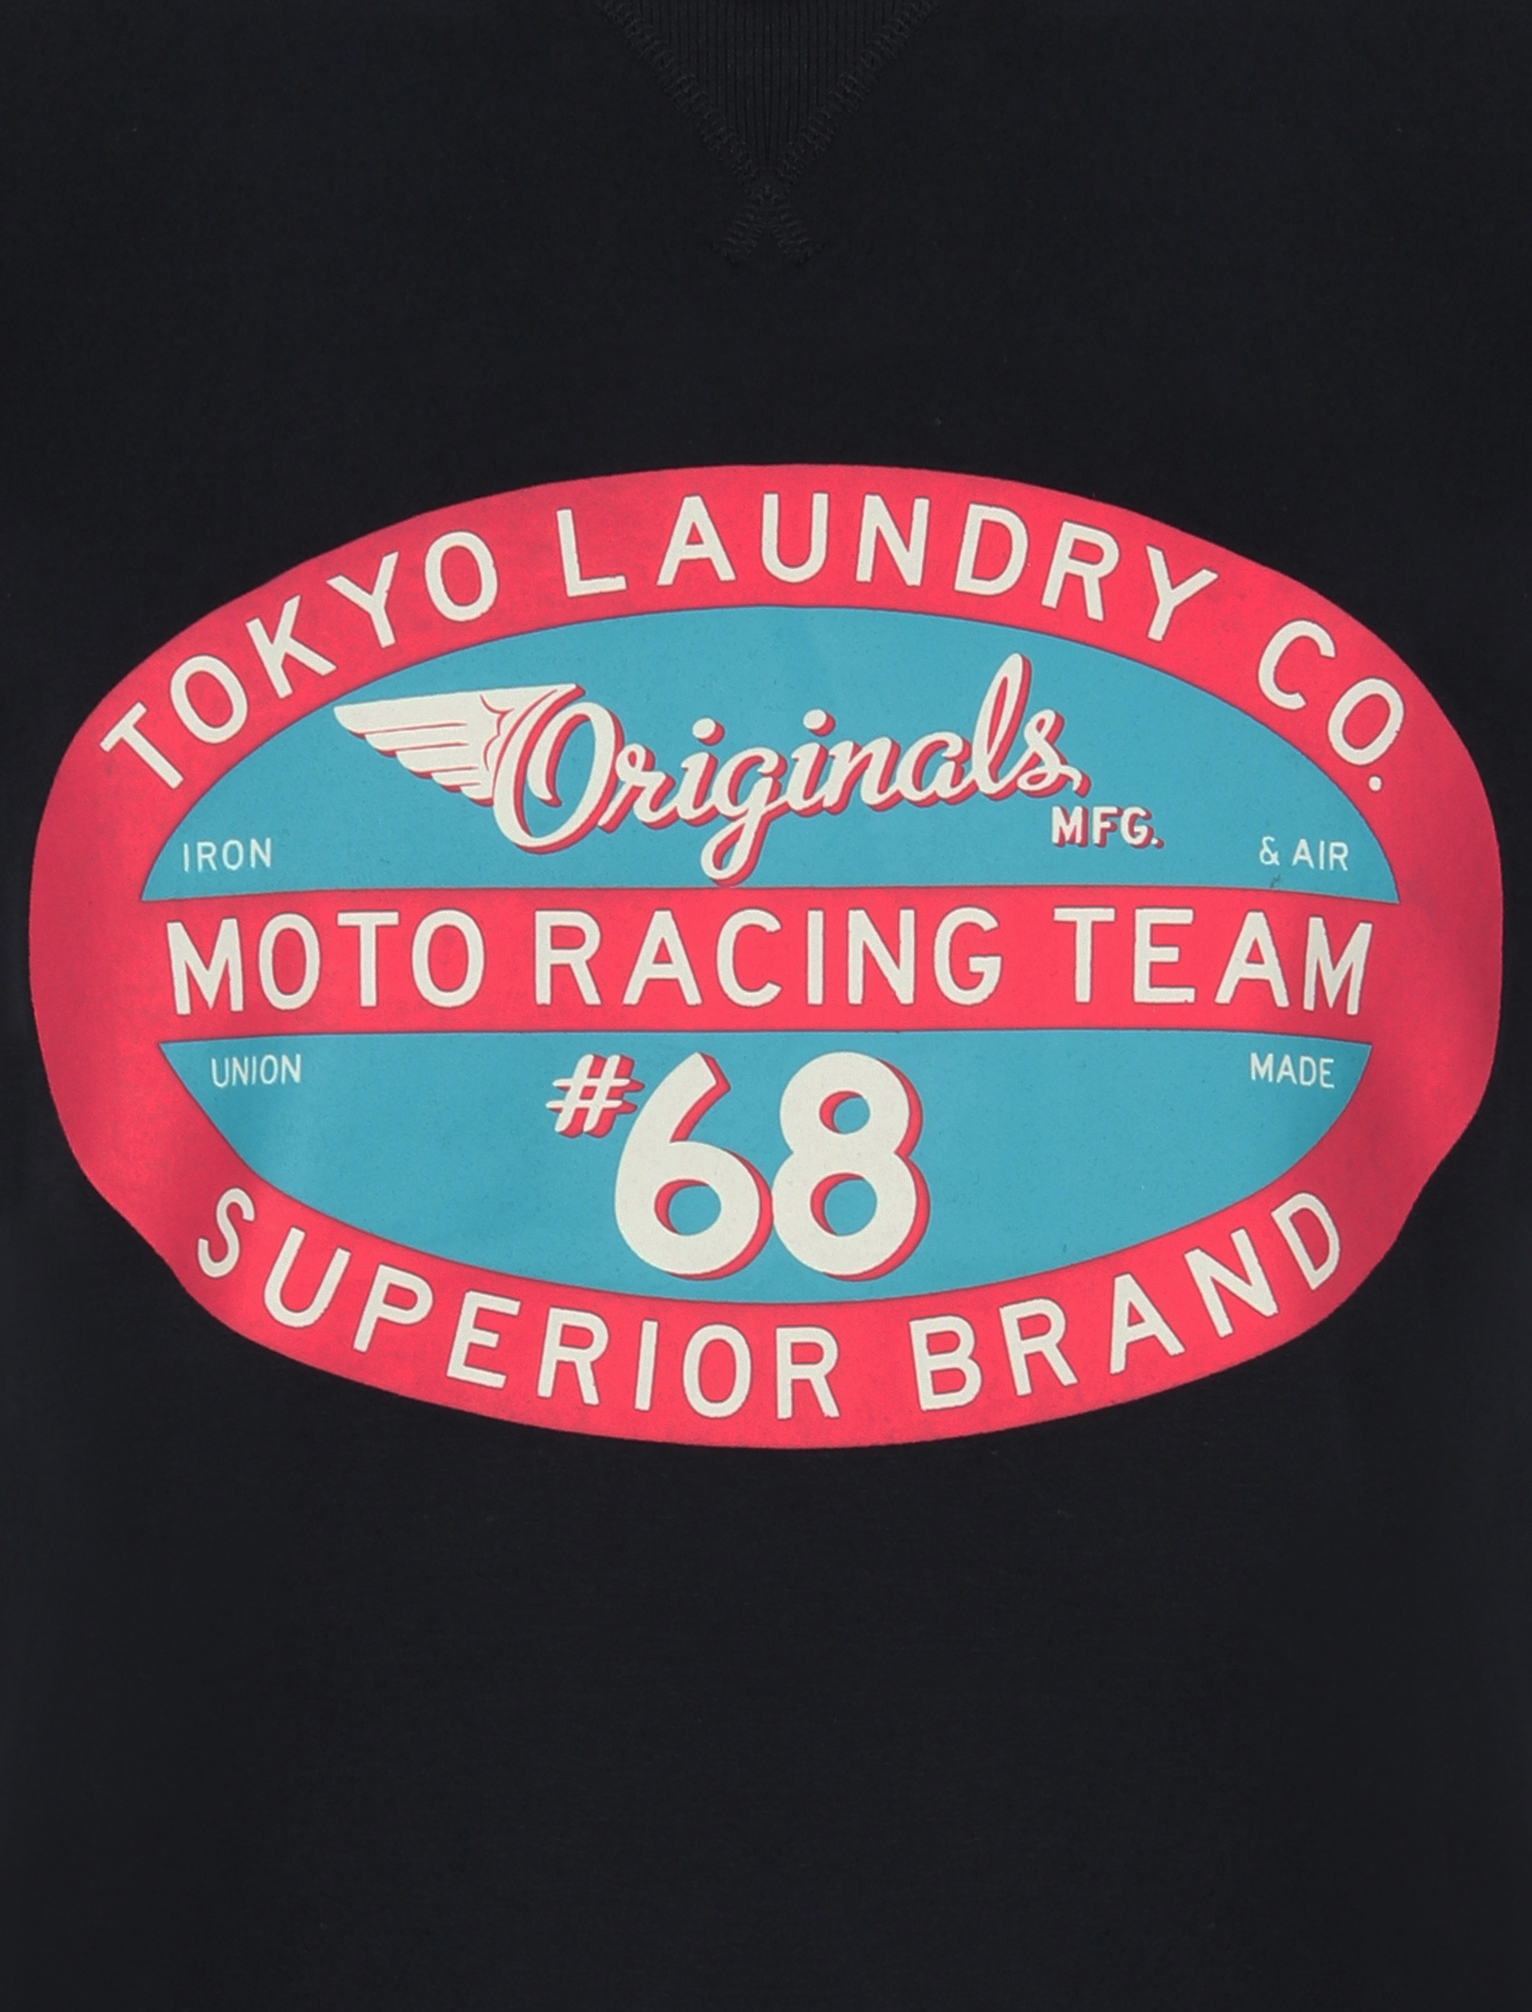 Tokyo-Laundry-Mens-Crew-Neck-T-Shirt-Vintage-Retro-Graphic-Print-Top-Size-S-XXL miniatura 8